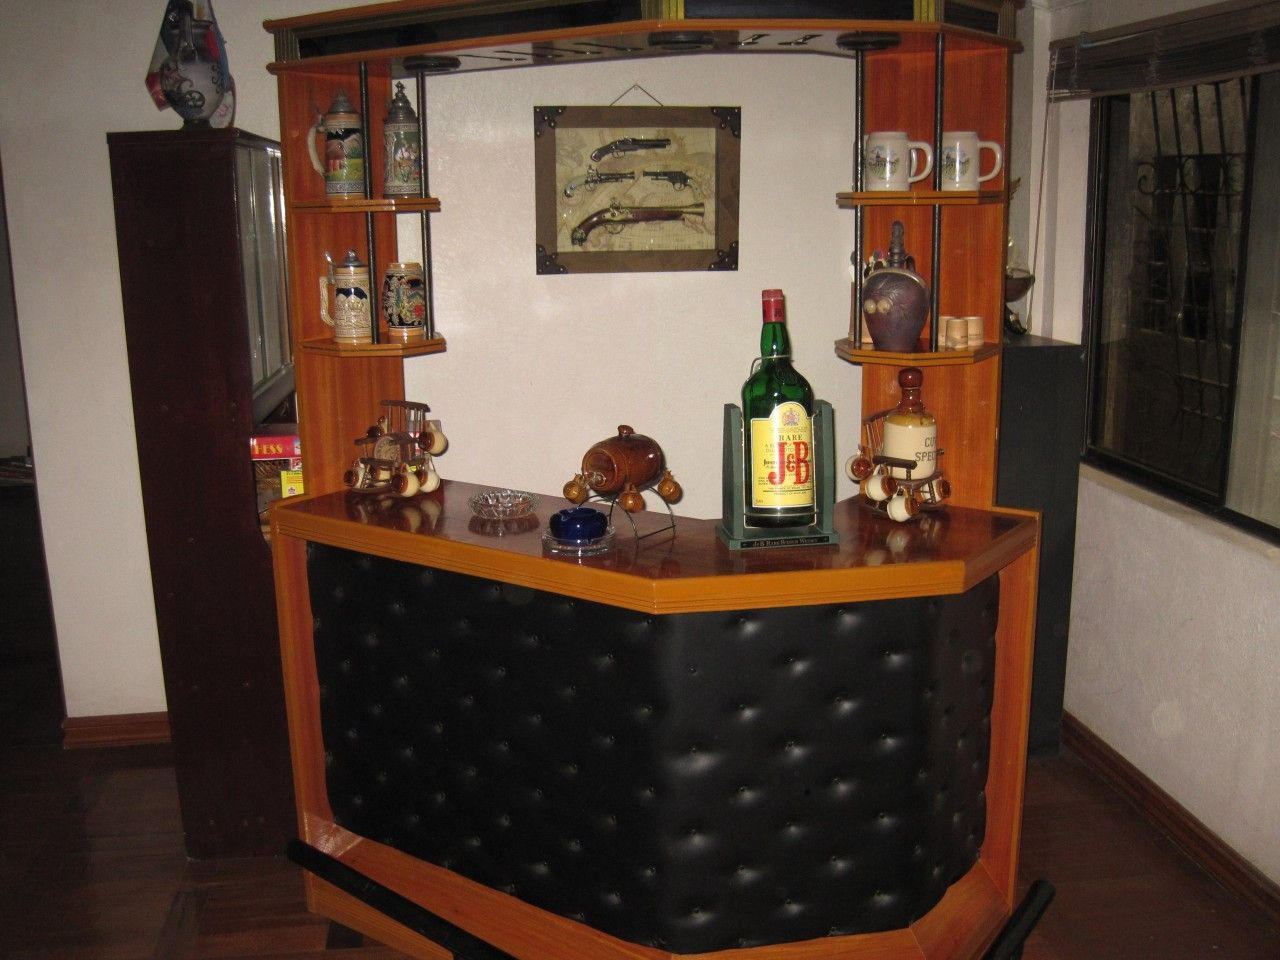 Mini bar counter designs for homes google search stuff to buy pinterest bar counter - Bar counter designs for home ...